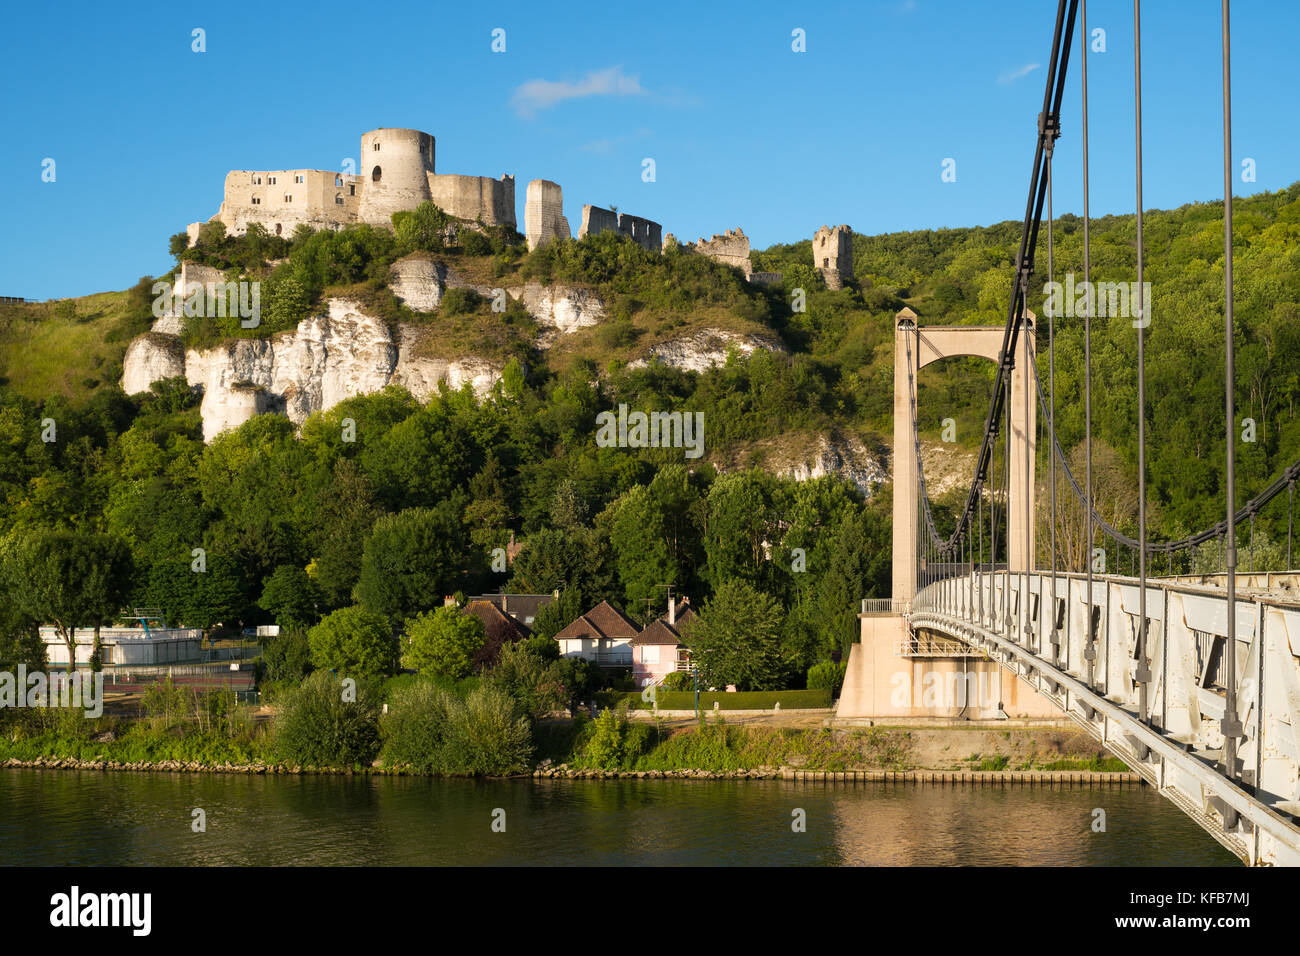 Château Gaillard, a ruined medieval castle, seen from Andelys suspension bridge across the river Seine, Les Andelys, Stock Photo